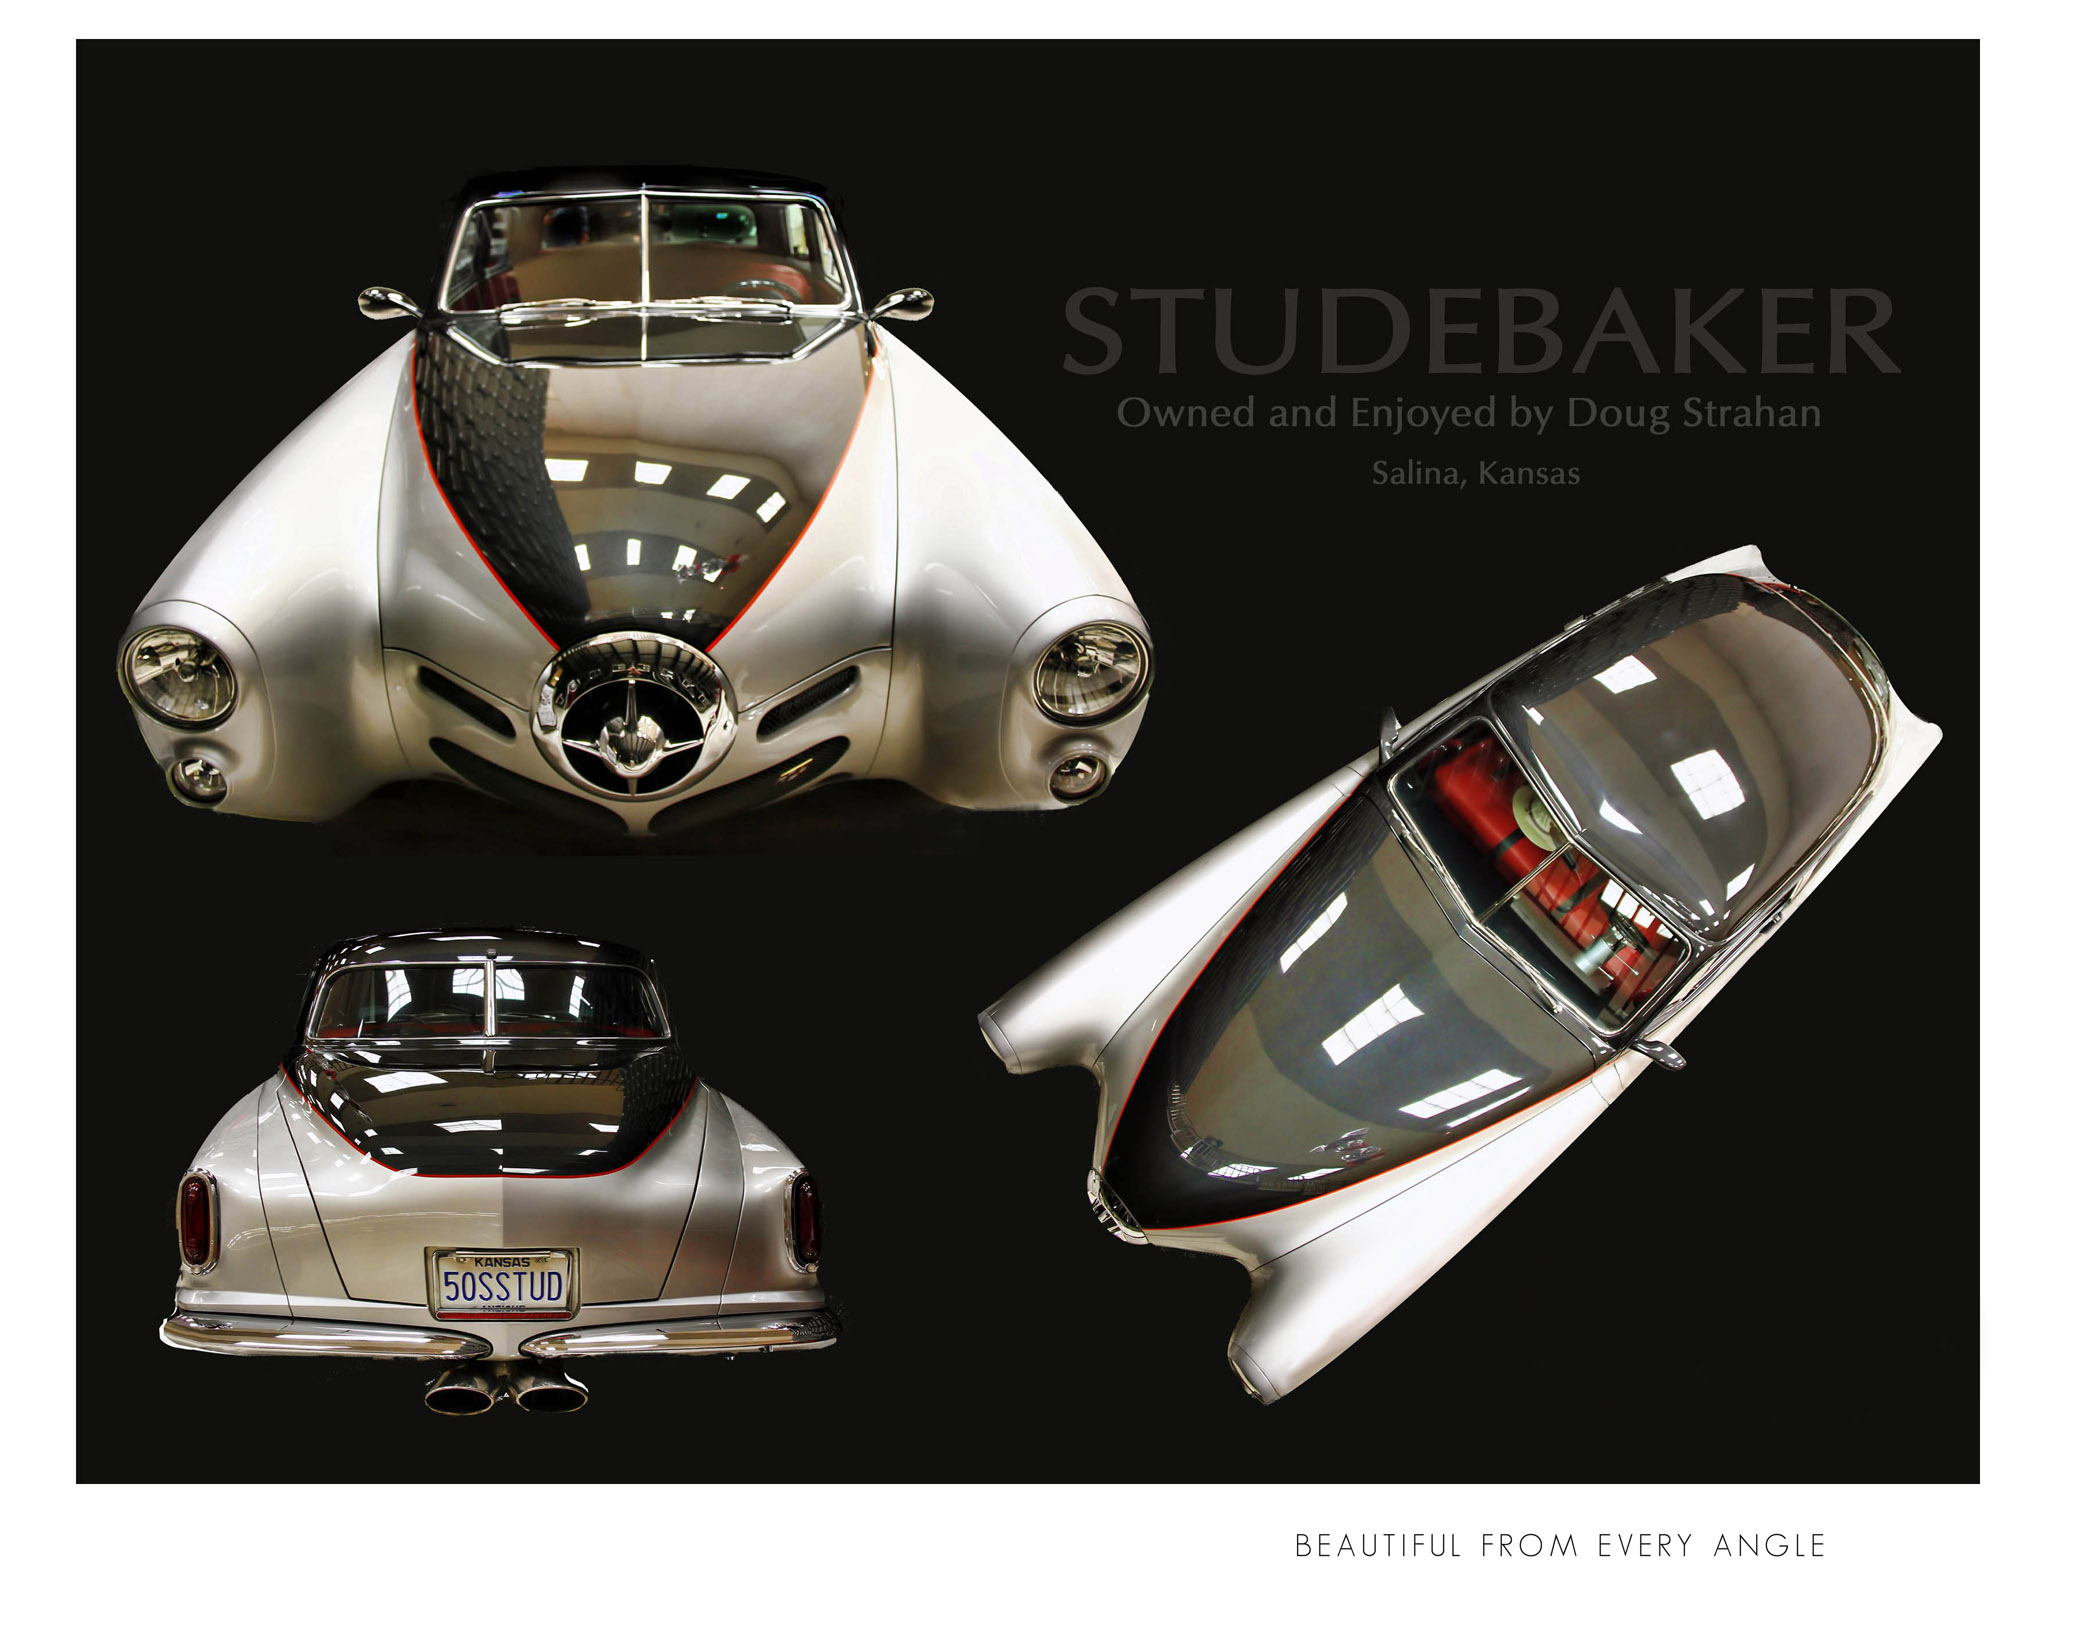 BEAUTIFUL-FROM-EVERY-ANGLE-STUDEBAKER-copy-2